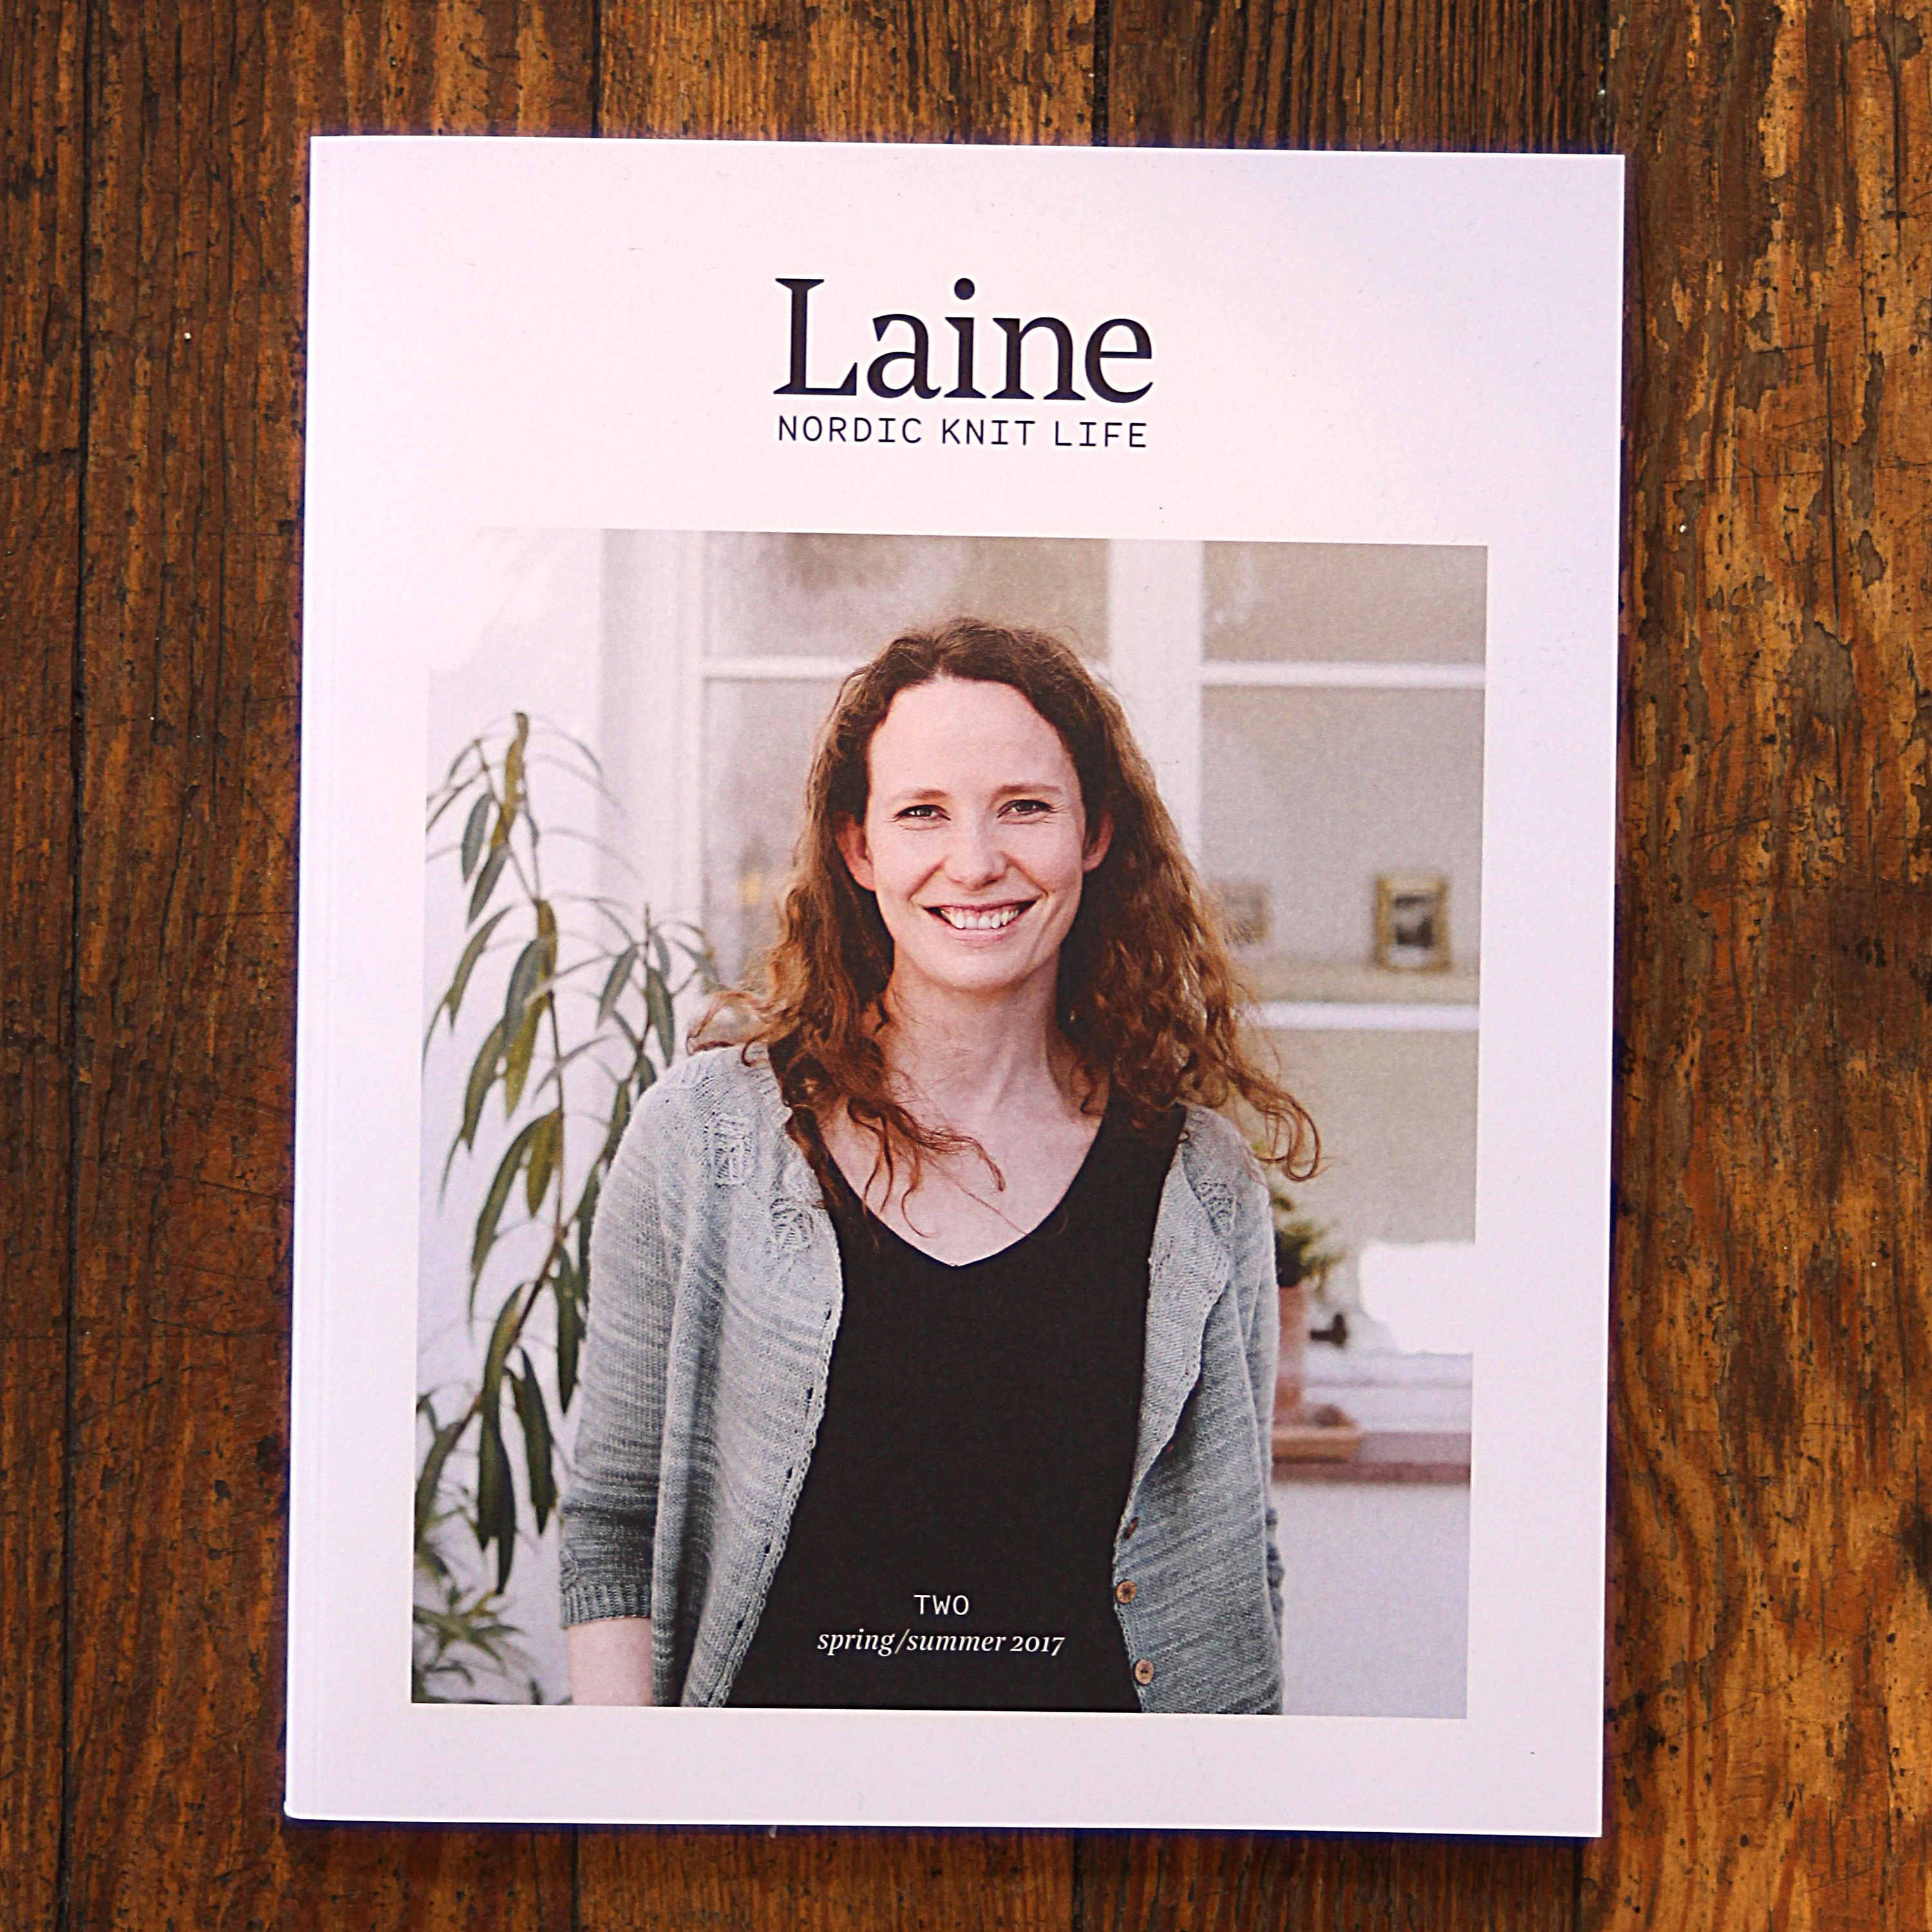 Laine Nordic Knit Life, Patterns, Magazine, Issue 2: Spring/Summer 2017